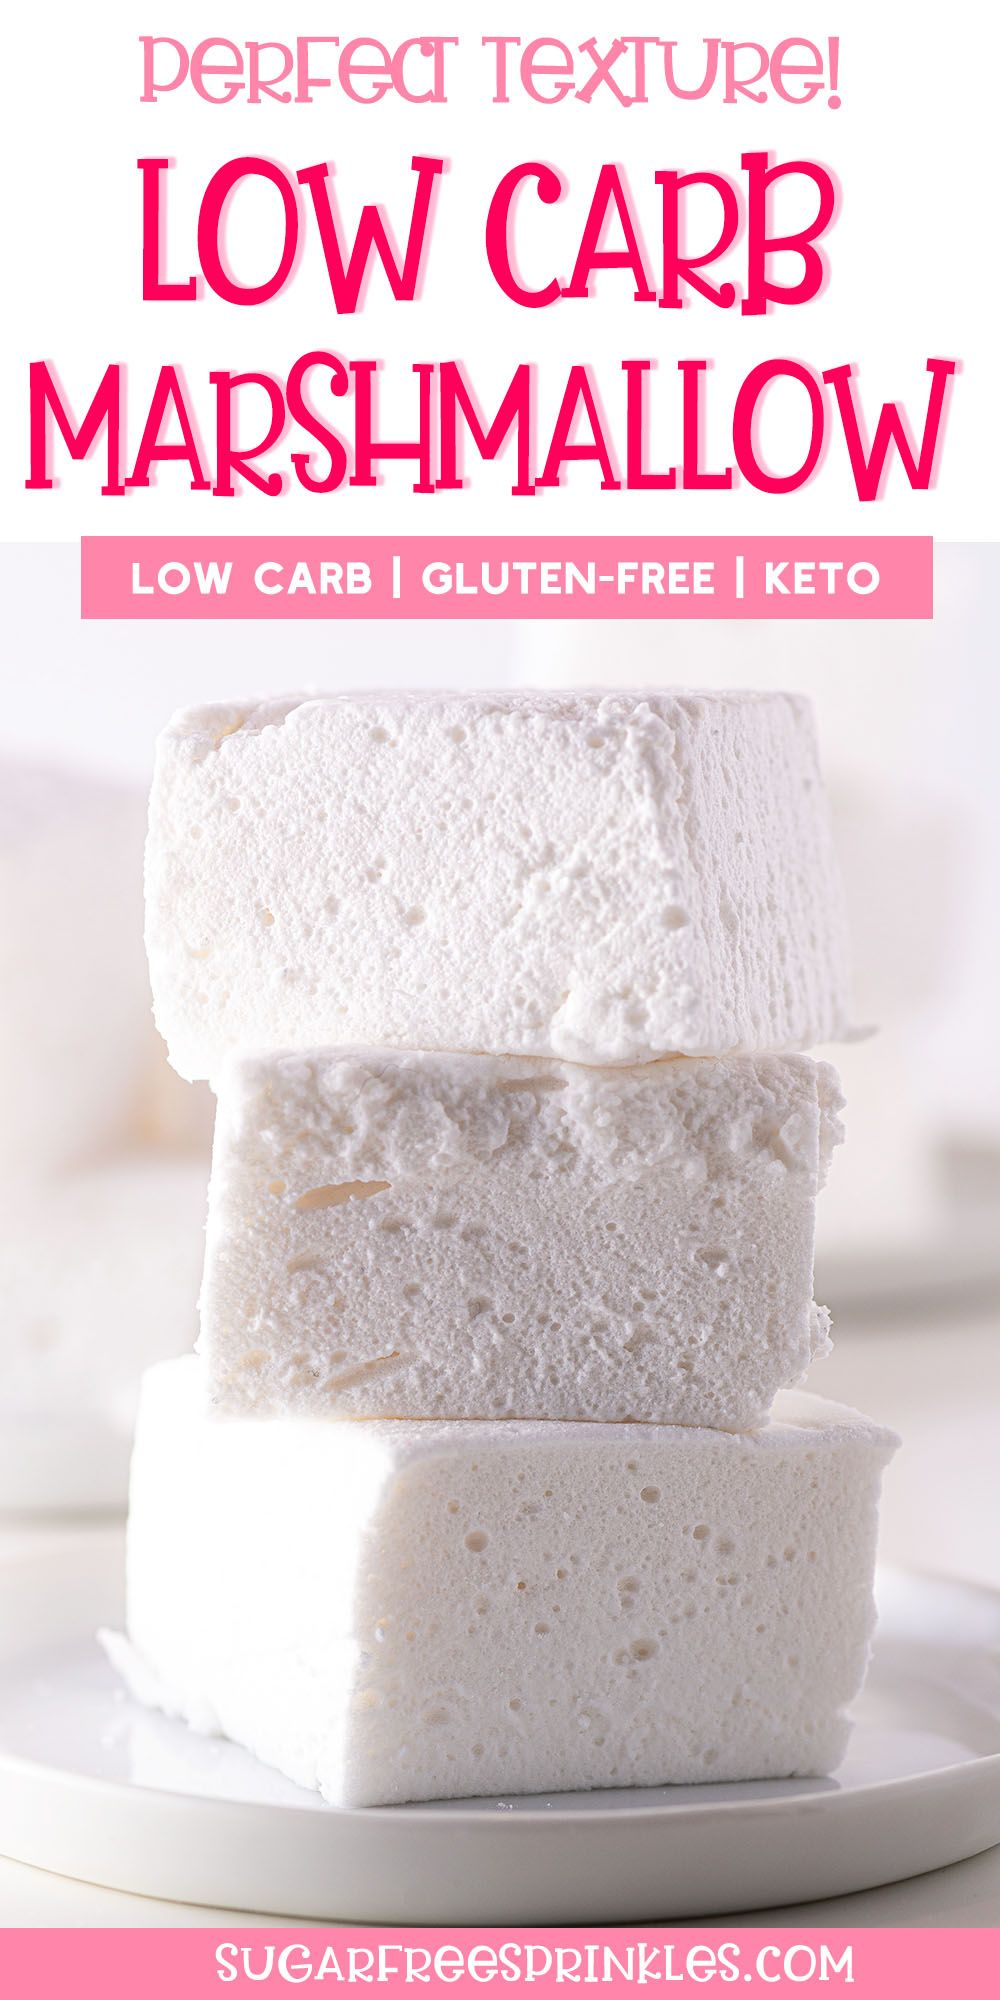 Fluffy & Perfect Low Carb Marshmallows!